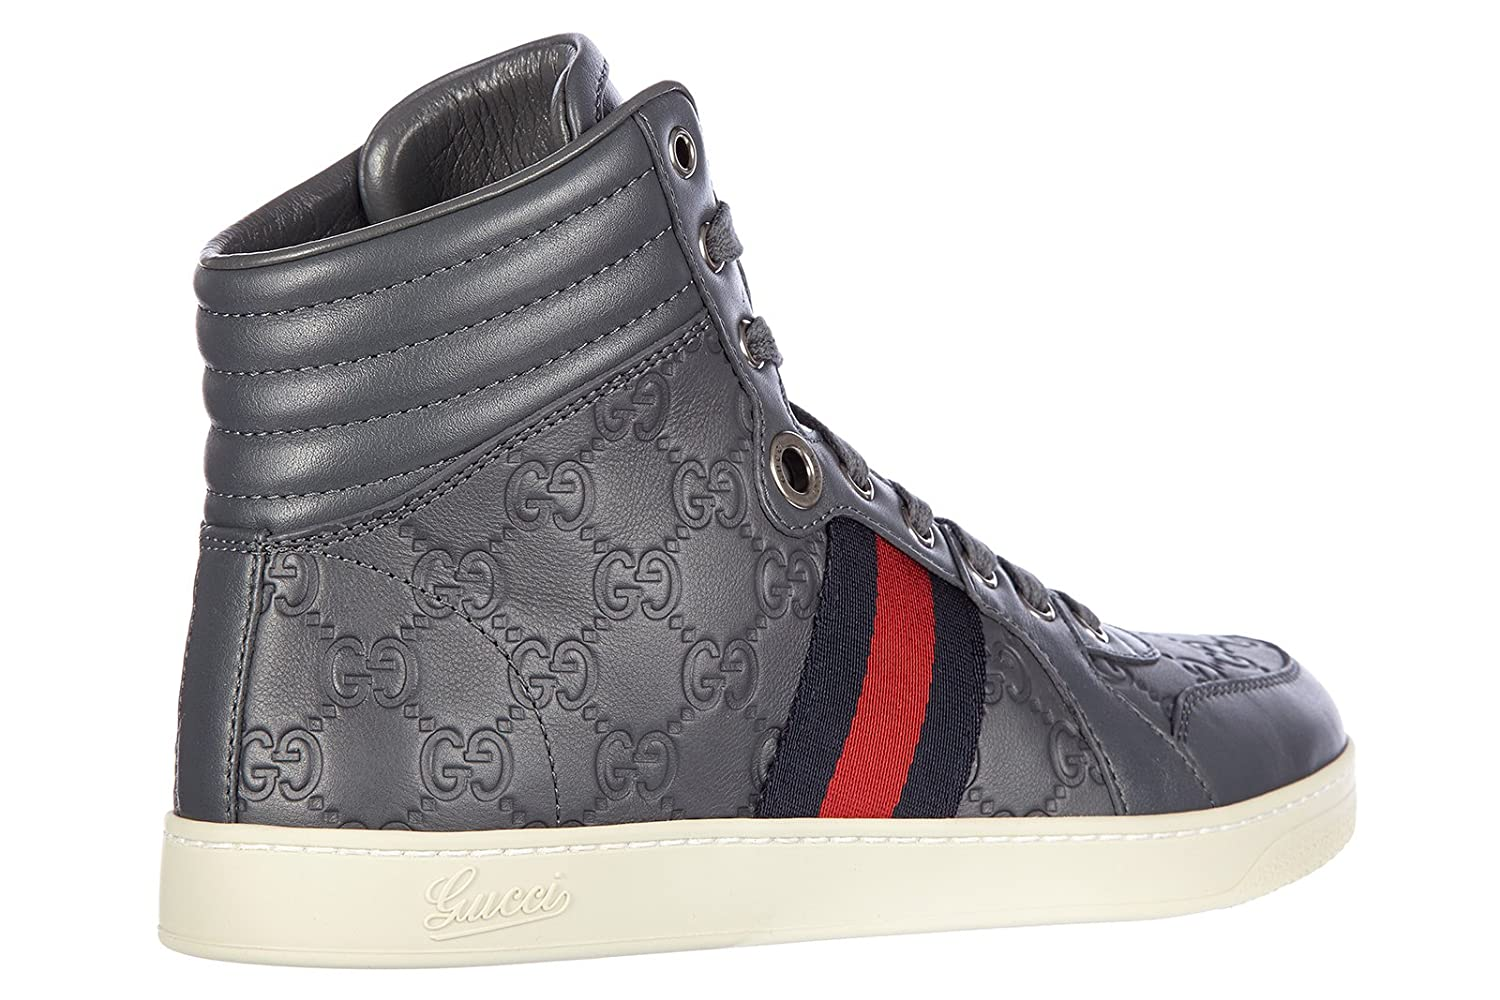 35d16c98c Gucci men's shoes high top leather trainers sneakers miro soft grey UK size  9 221825 A9L90 1360: Amazon.co.uk: Shoes & Bags